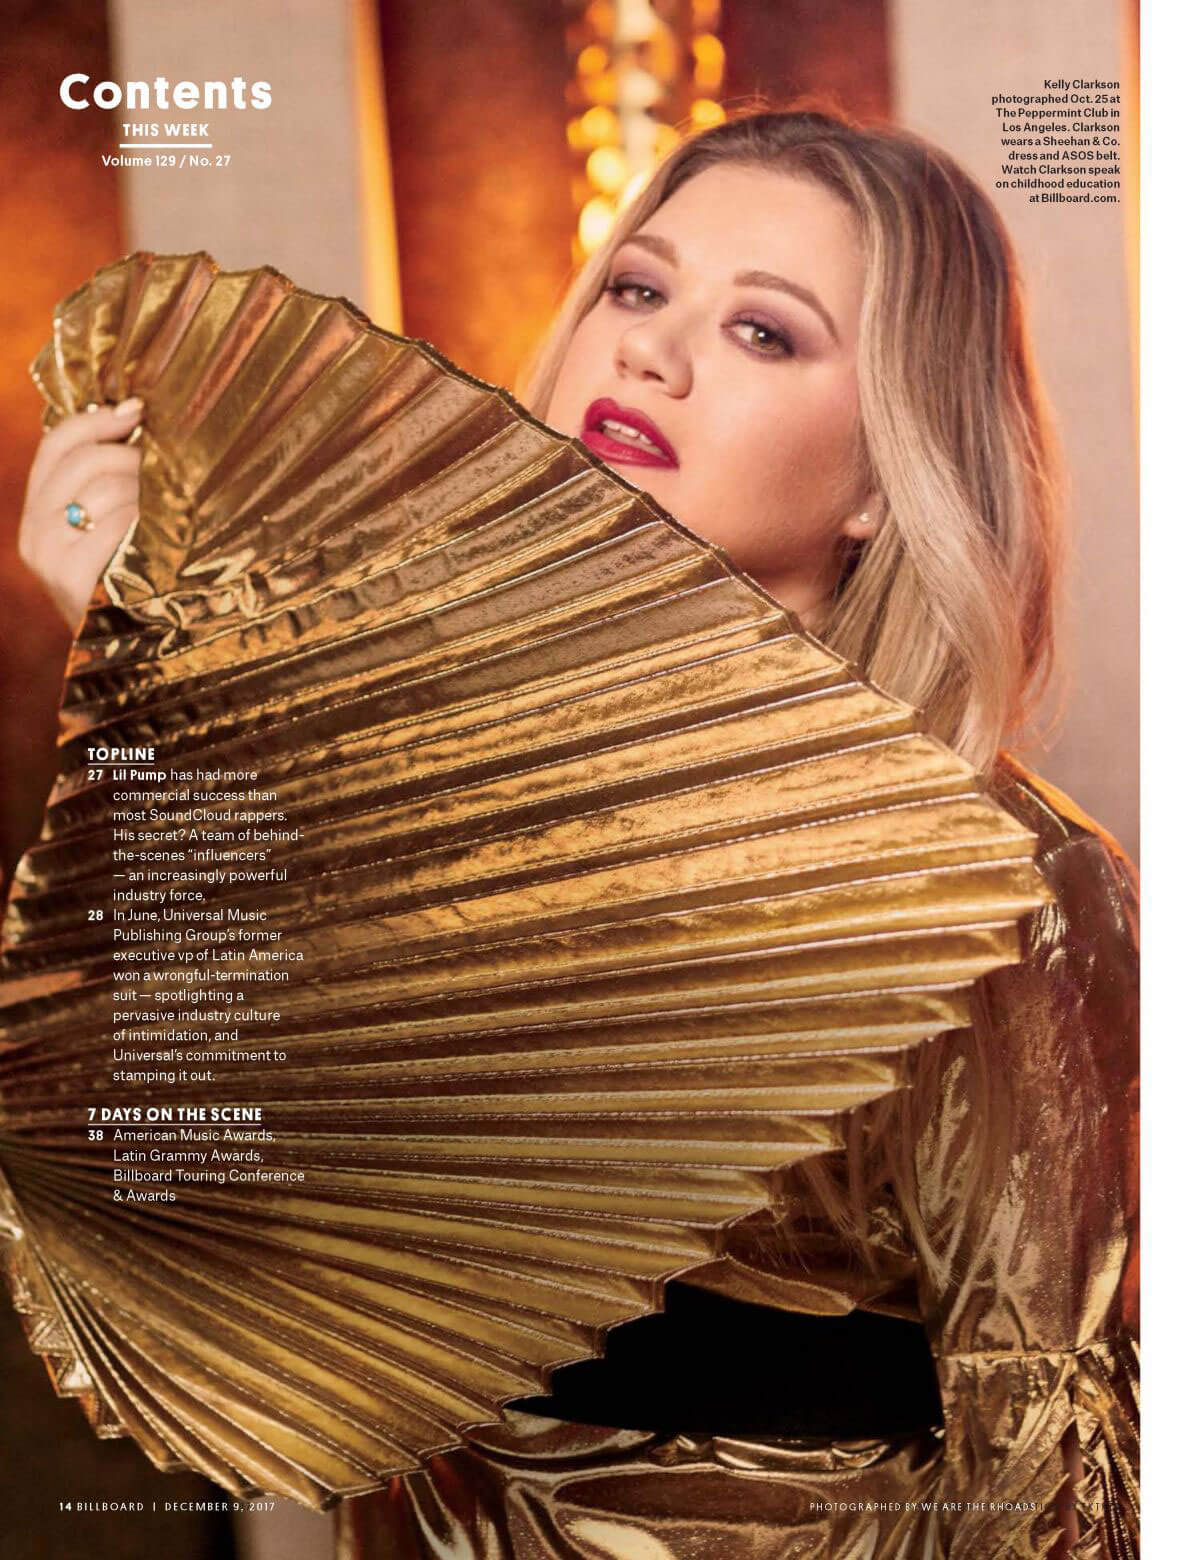 Kelly Clarkson Stills in Billboard Magazine, December 2017